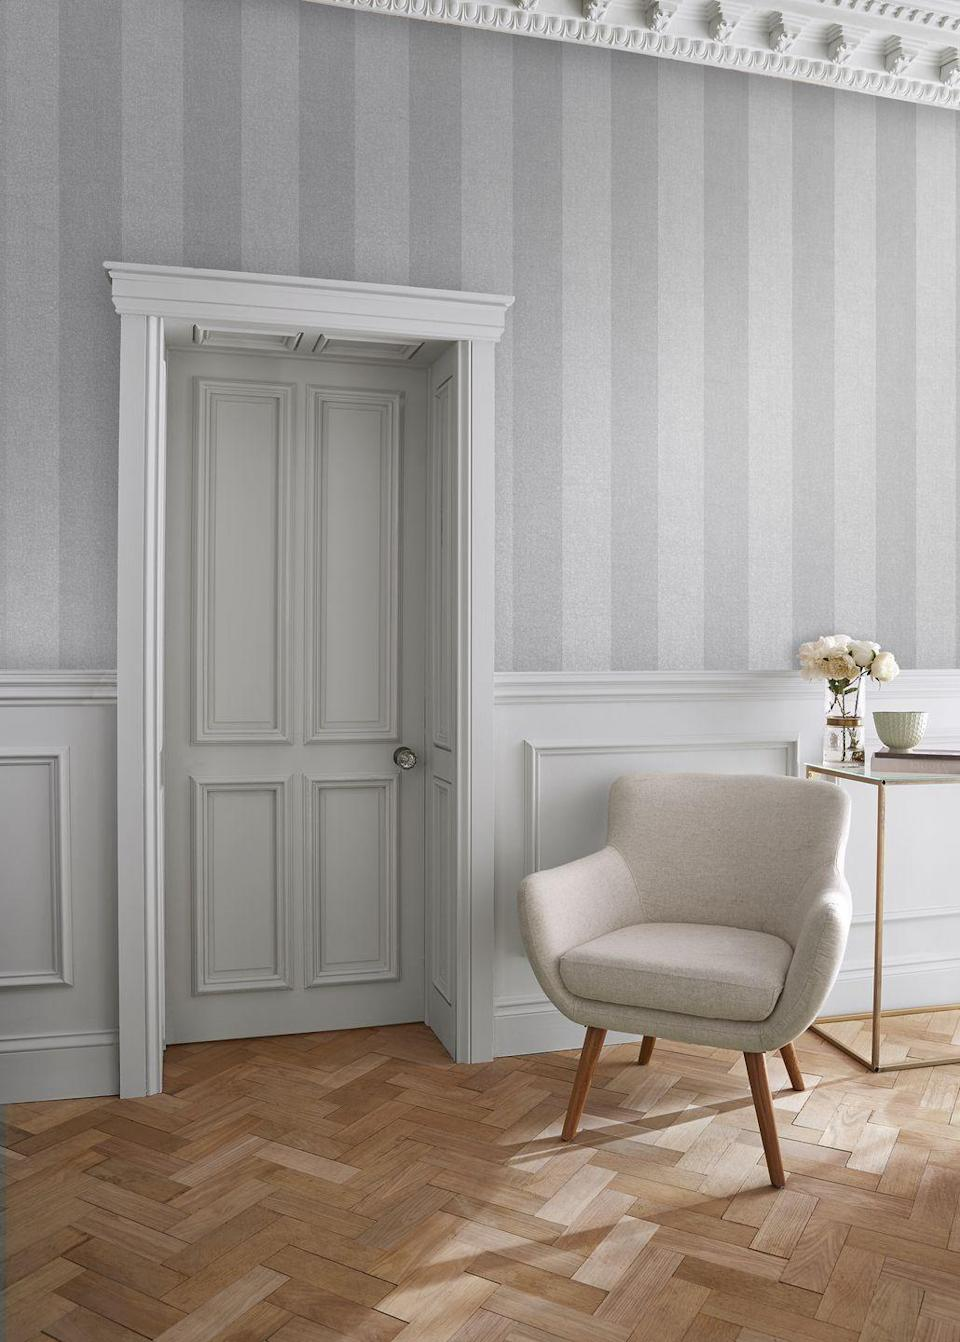 """<p>Stripes never fail to please and are a timeless choice. Stripes work well in all rooms but are particularly good if you have low living room ceilings as they give the illusion of making the room look taller.<br></p><p>Top Tip: Stripes look good teamed with panelling and if you are yearning for the <a href=""""https://www.housebeautiful.com/uk/decorate/looks/g35211288/bridgerton-regencycore-homeware/"""" rel=""""nofollow noopener"""" target=""""_blank"""" data-ylk=""""slk:Bridgerton"""" class=""""link rapid-noclick-resp"""">Bridgerton</a> look, they aren't called a Regency Stripe for nothing!</p><p>Pictured: Heritage Stripe in Grey, <a href=""""https://www.grahambrown.com/uk/heritage-stripe-grey-wallpaper/107590-master.html"""" rel=""""nofollow noopener"""" target=""""_blank"""" data-ylk=""""slk:Graham & Brown"""" class=""""link rapid-noclick-resp"""">Graham & Brown</a></p>"""